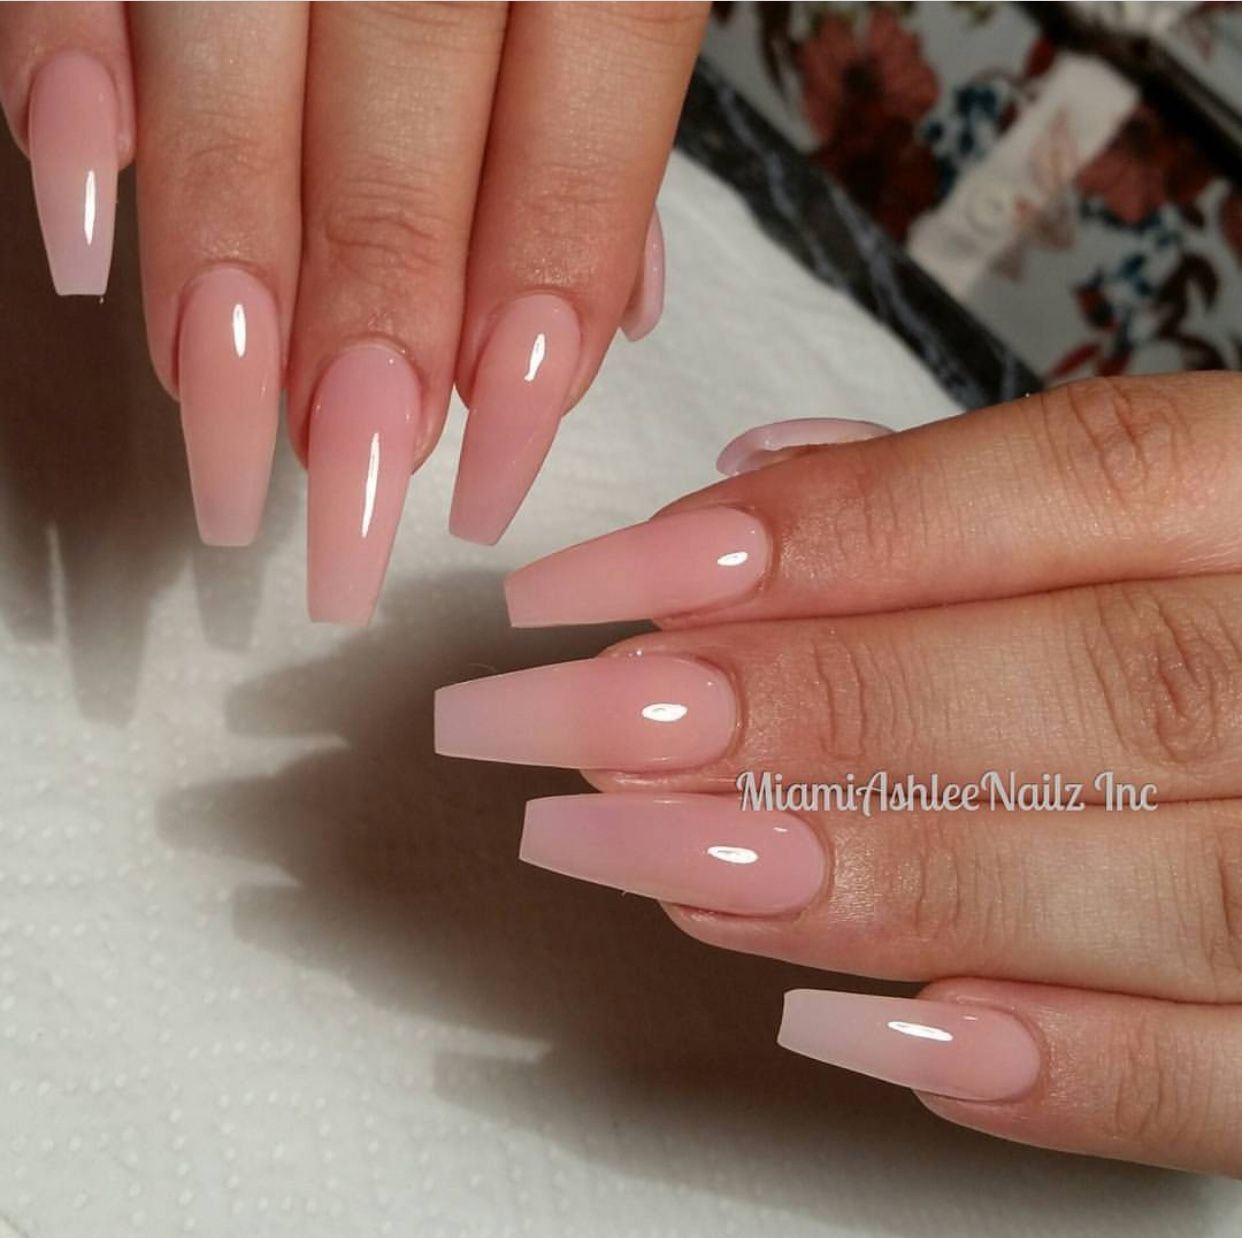 Pin By Mosadatupeters On Tattoos Pink Clear Nails Ballerina Nails Pink Acrylic Nails